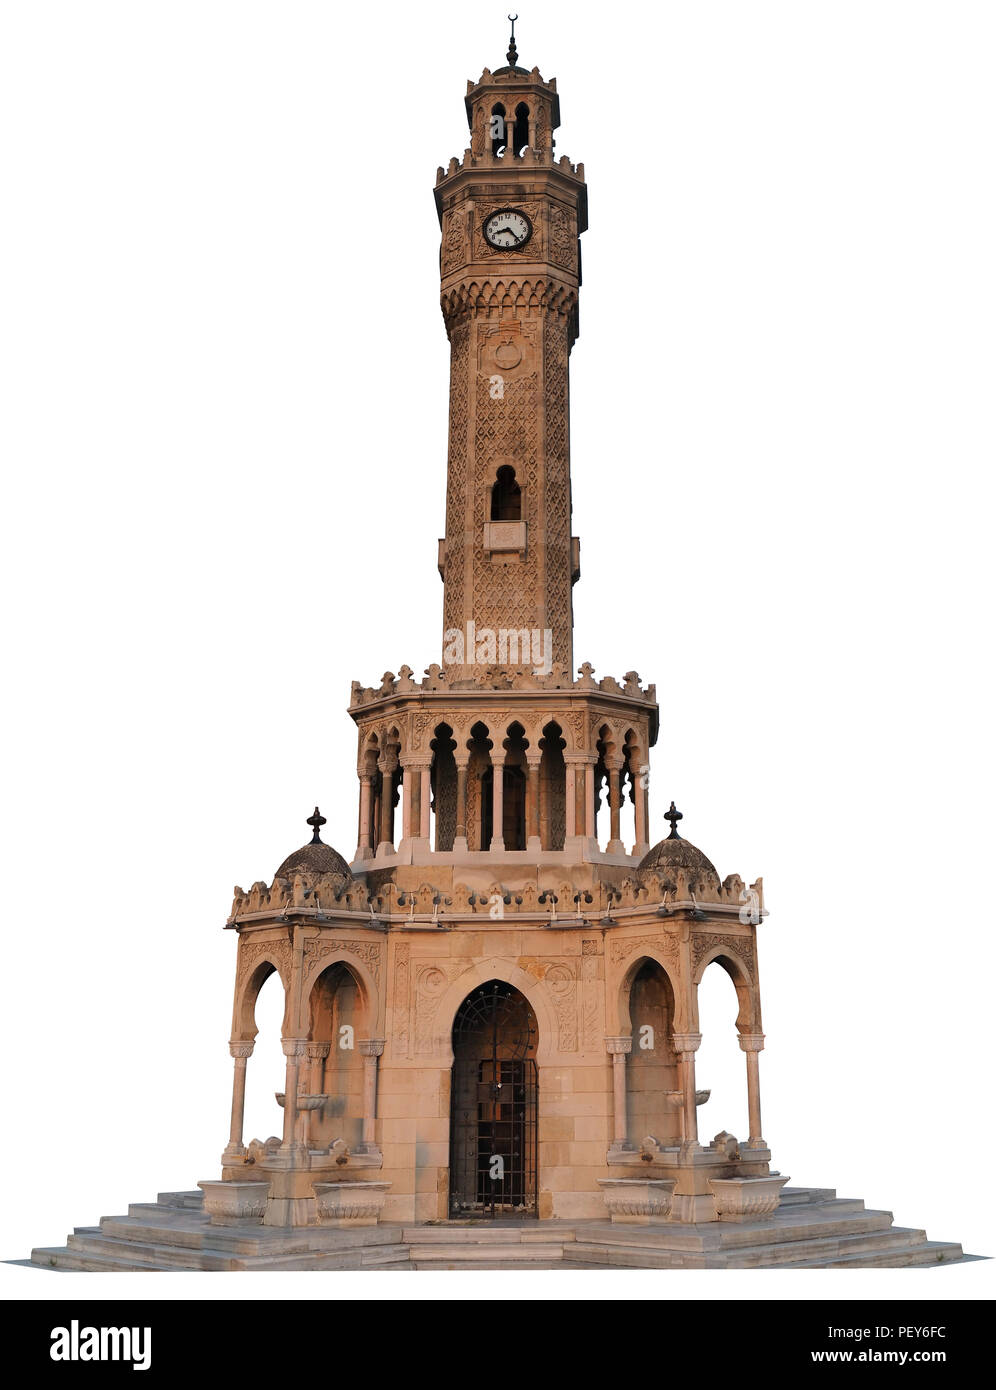 izmir clock tower isolated with white background - Stock Image